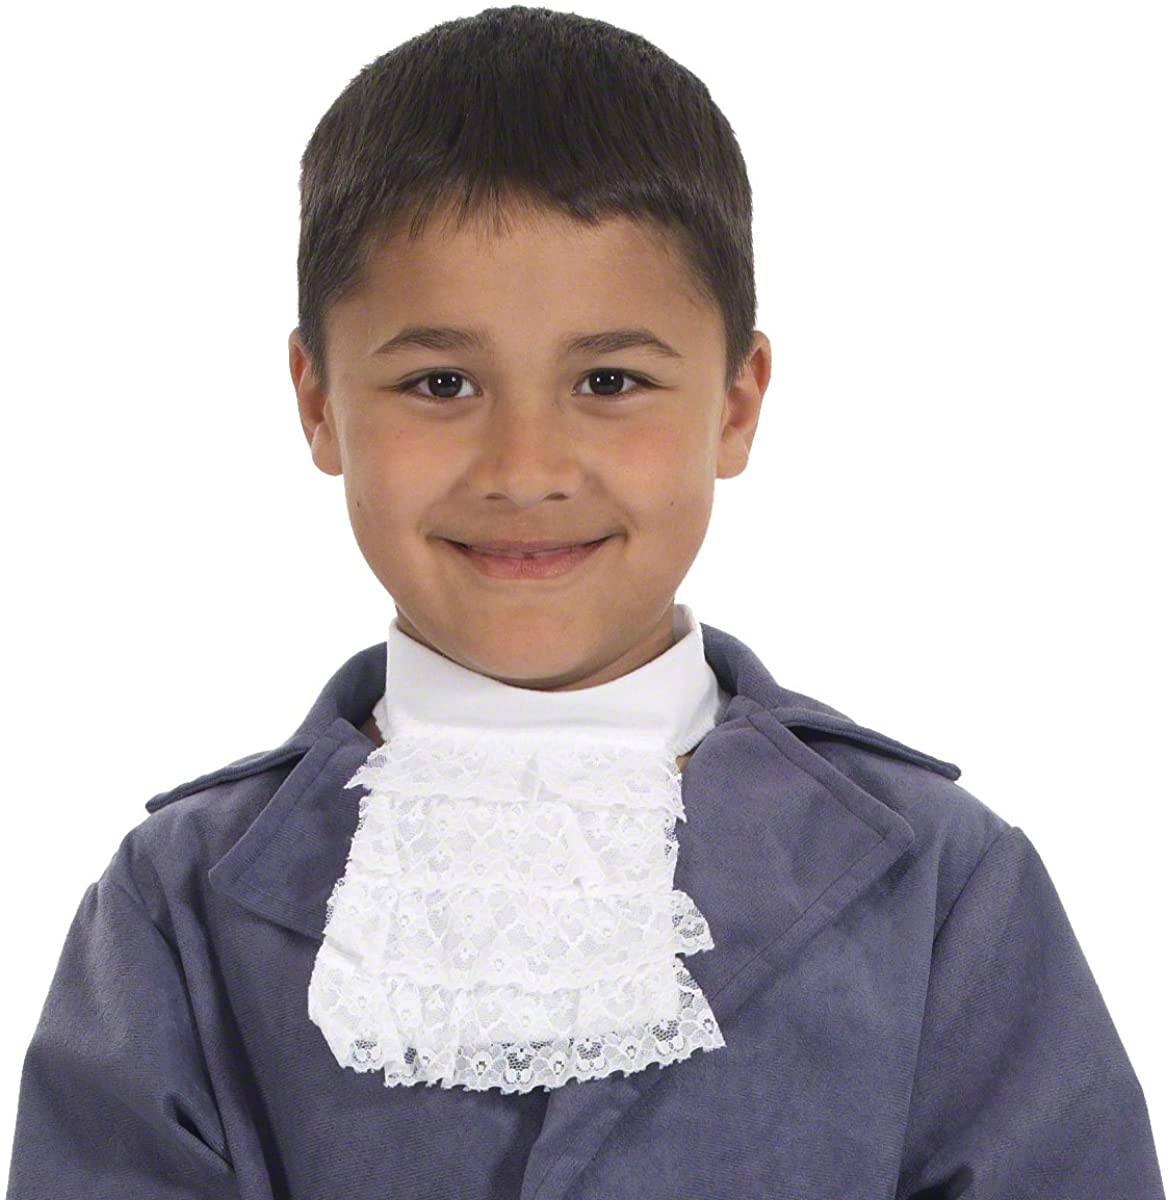 Charlie Crow White Lace Cravat for Kids one Size fits All 3+ Years